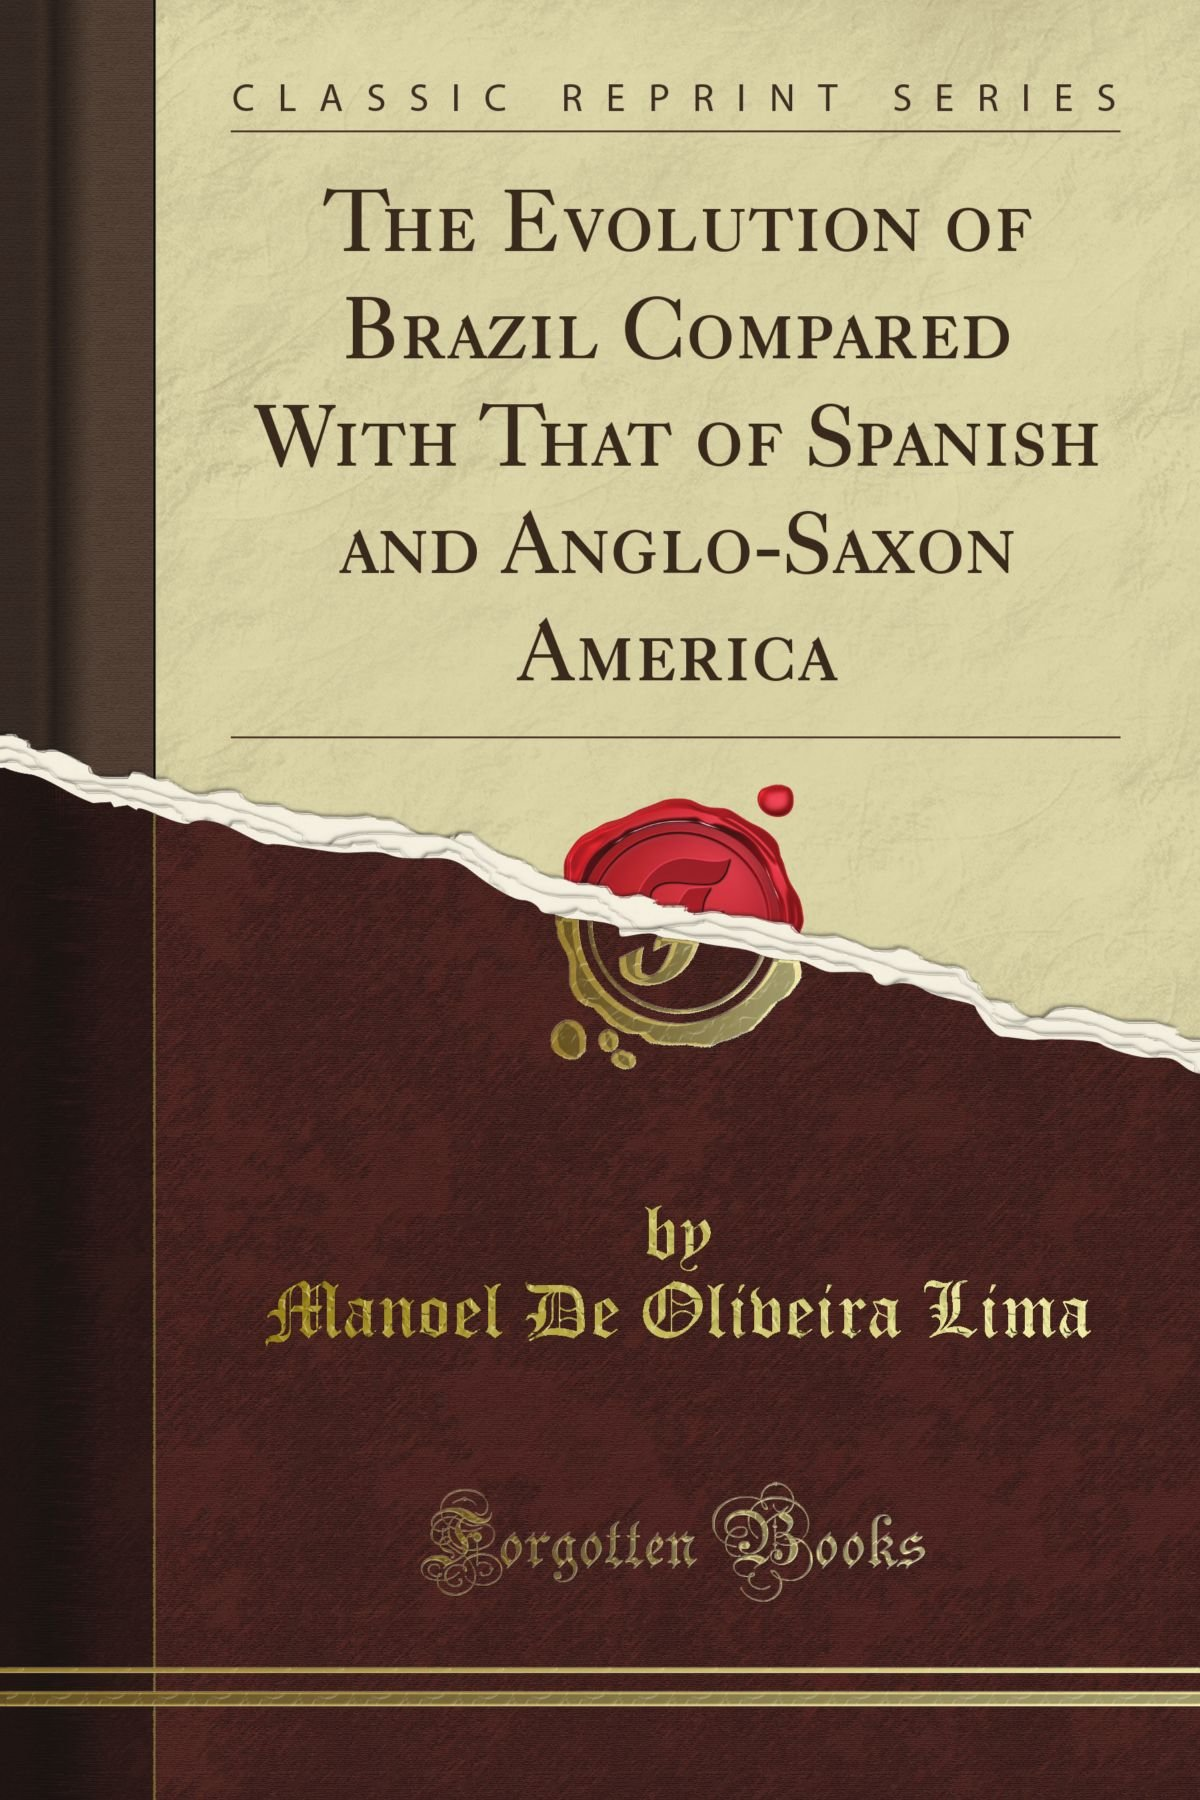 The Evolution of Brazil Compared With That of Spanish and Anglo-Saxon America (Classic Reprint)